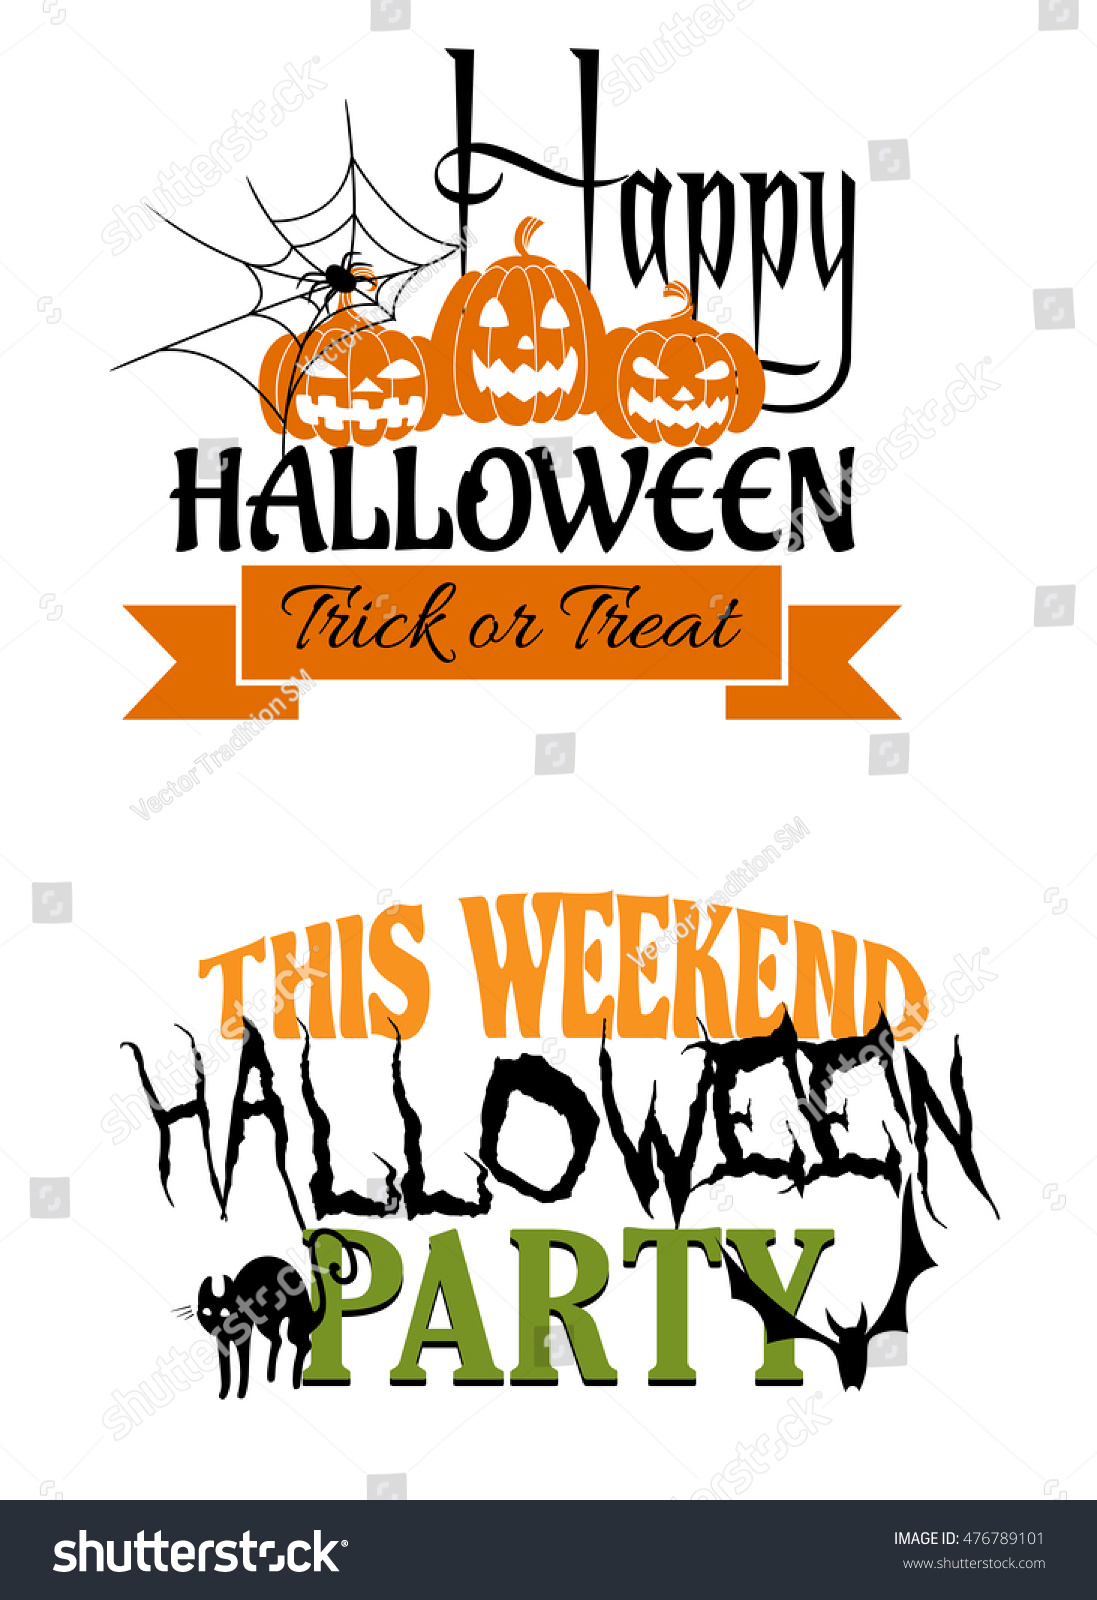 Two Halloween Party Designs, One Saying Happy Halloween Trick Or Treat With  Pumpkin Lanterns And